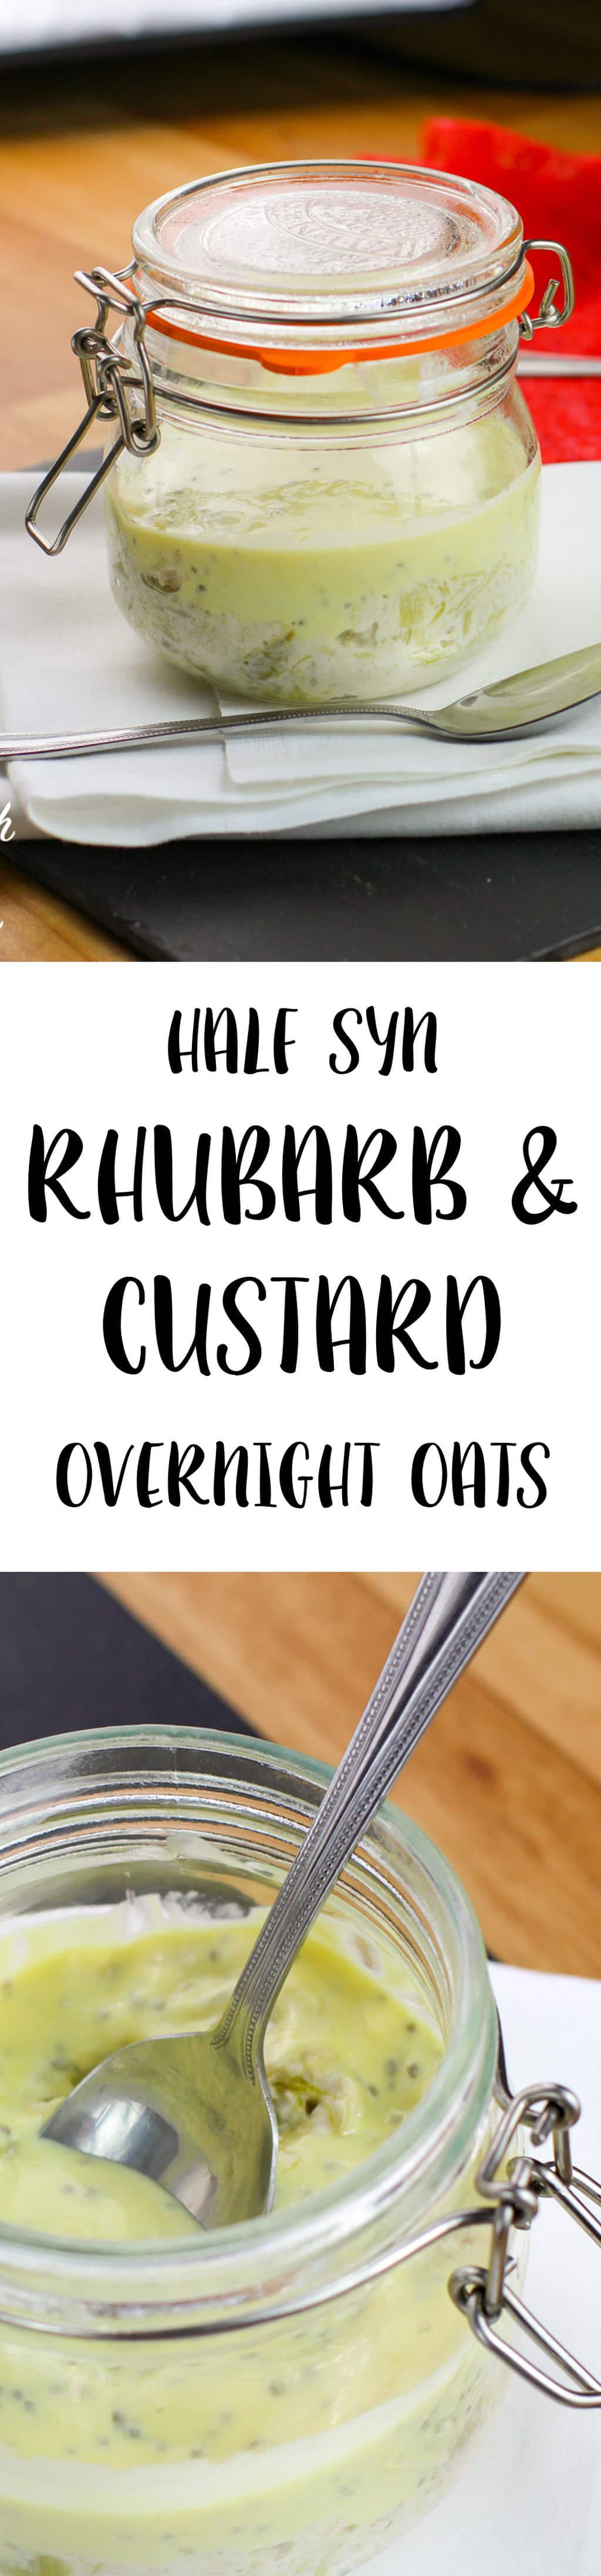 rubarb-overnight-oats-long-pin